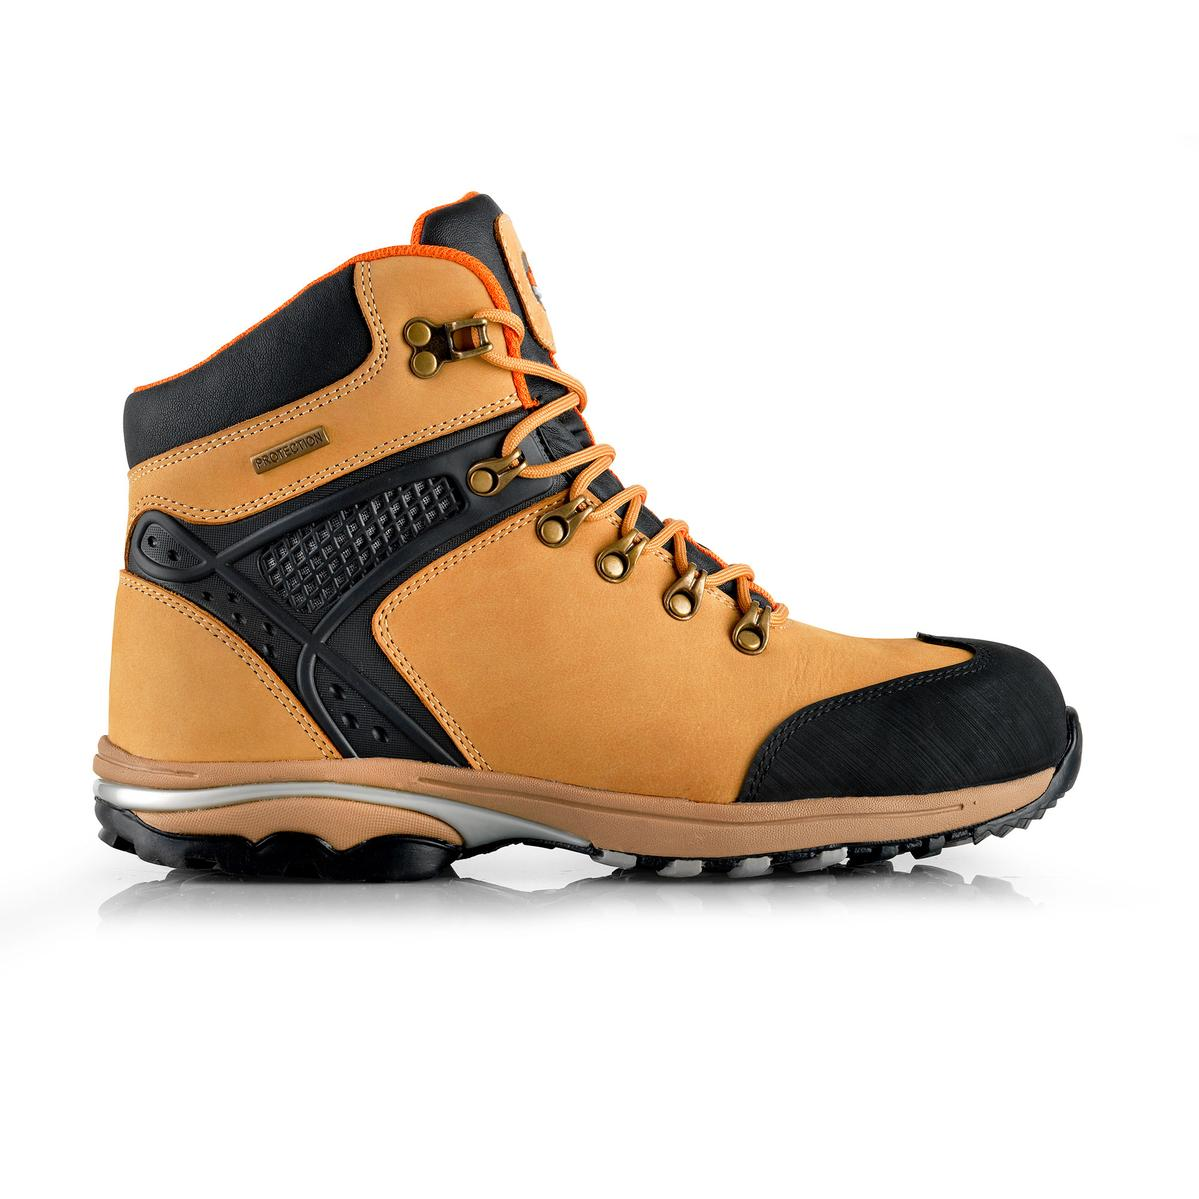 Scruffs Nemesis Safety boot